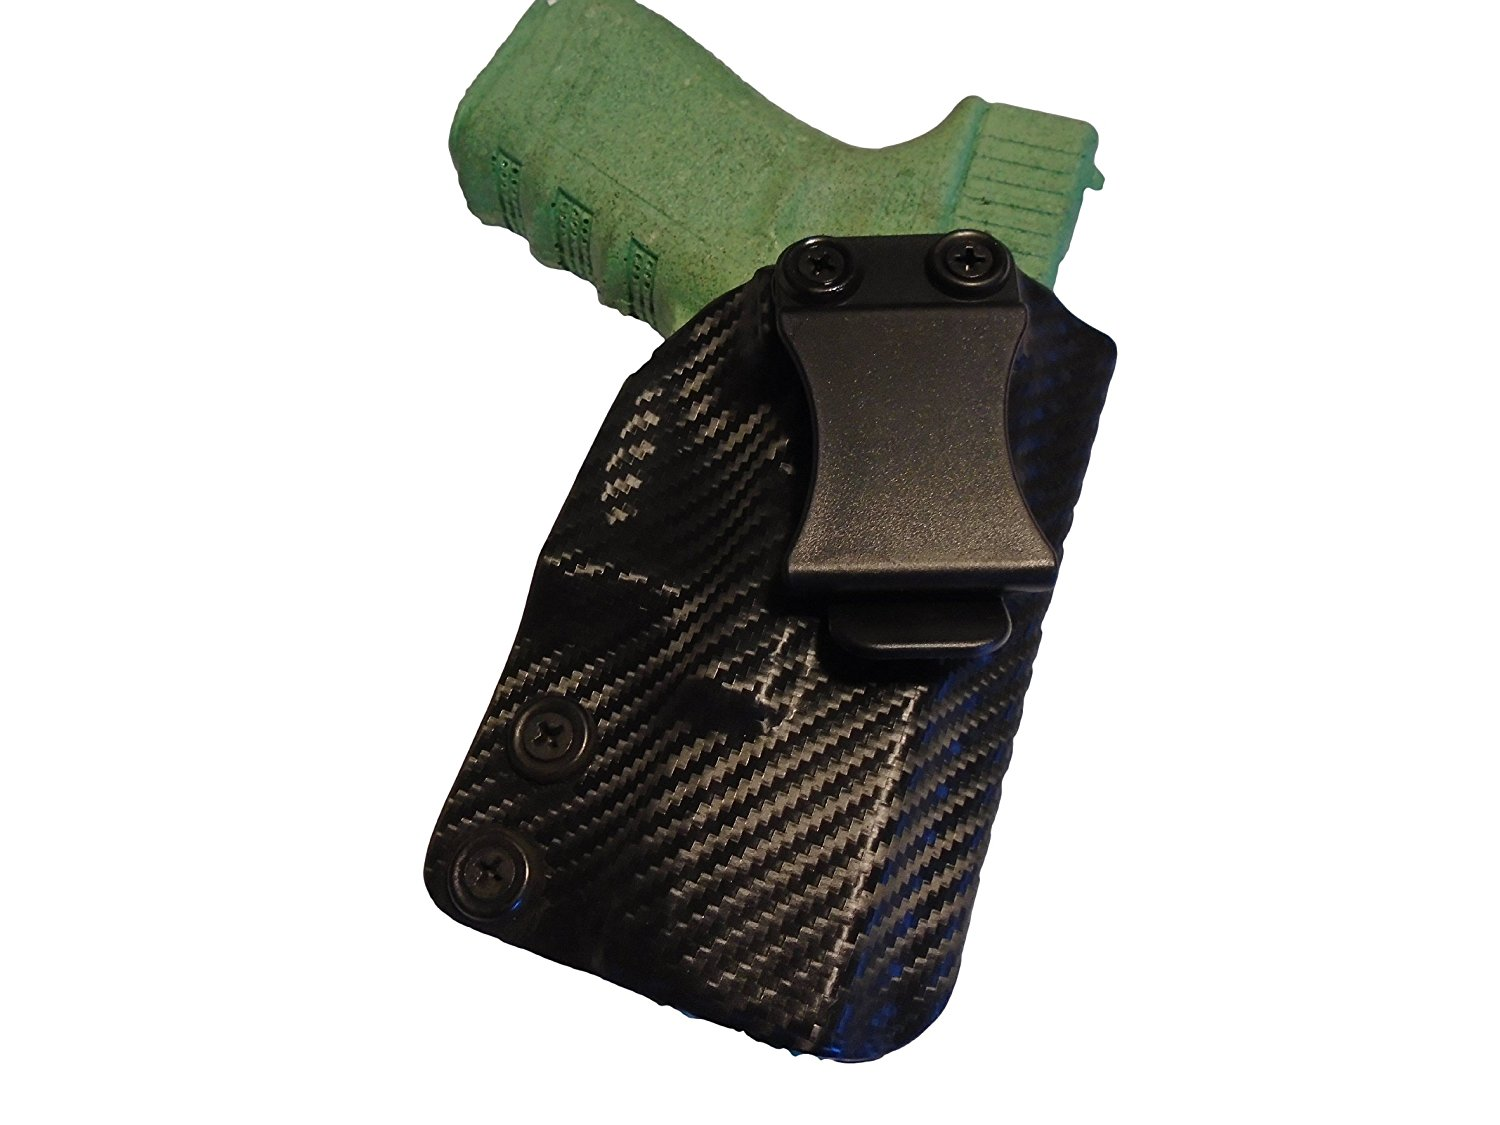 image of Glock Holster by Badger Concealment